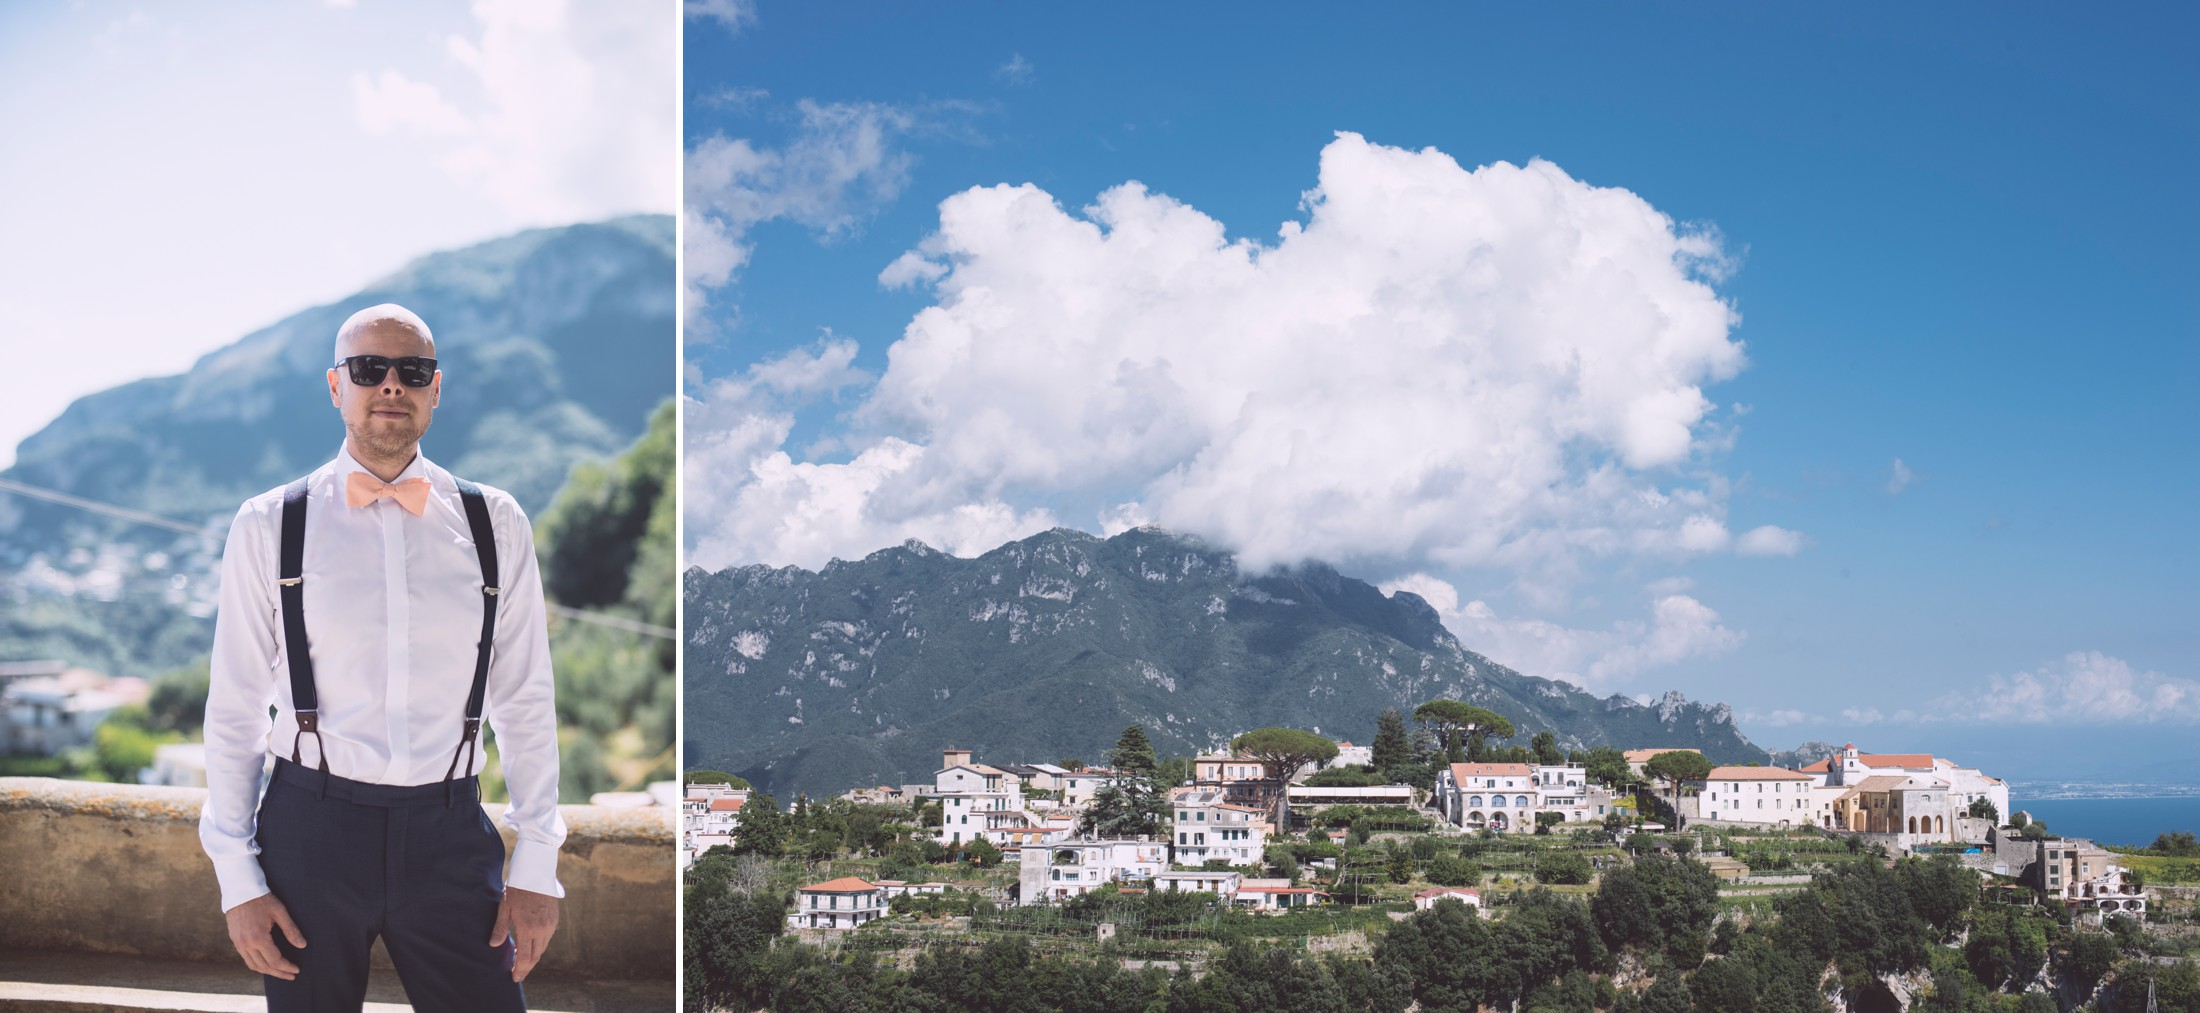 wedding in ravello collage groom's portrait and landscape